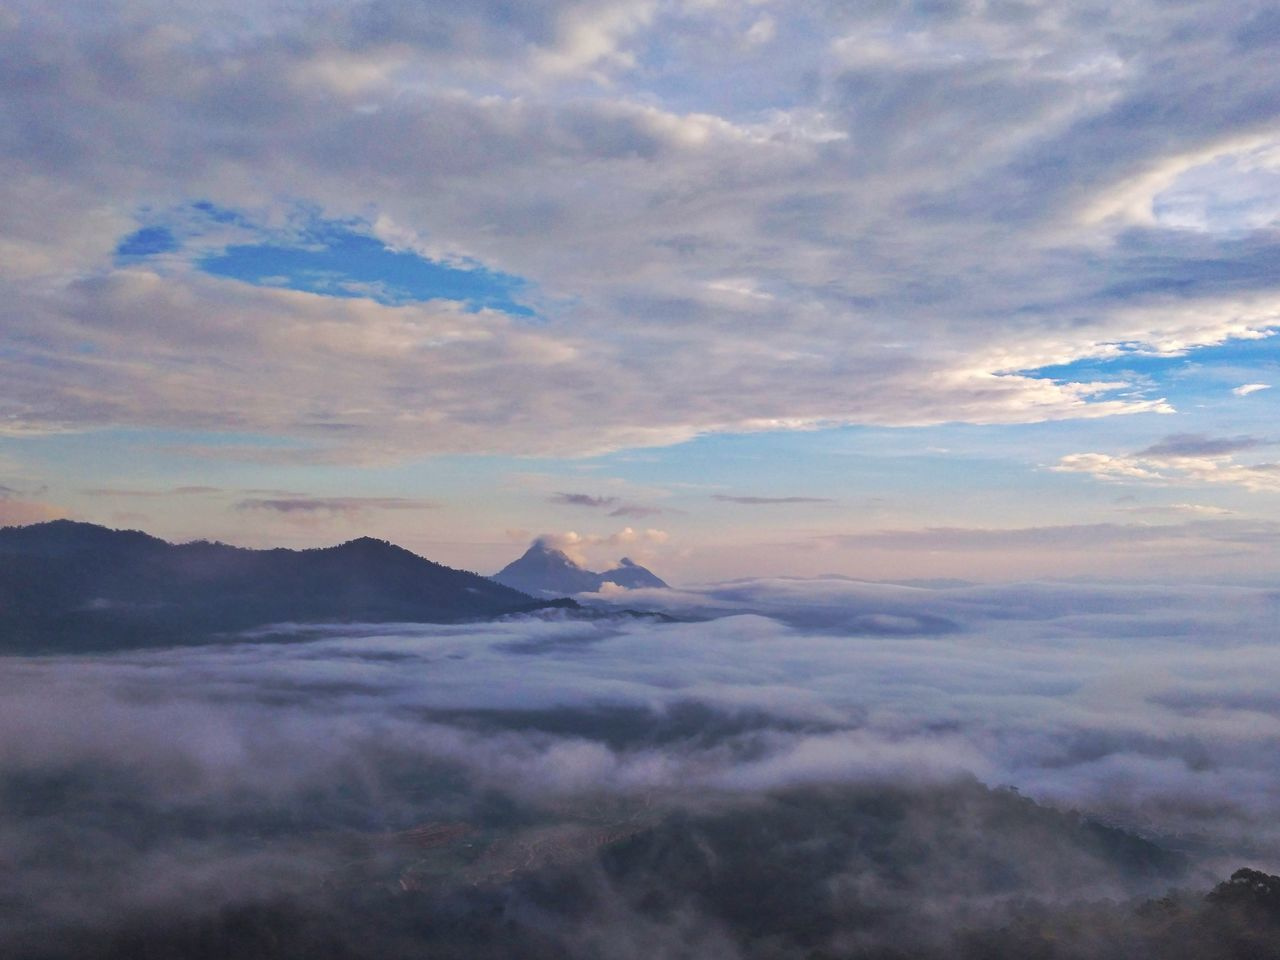 The K2; Gunung Kenderung & Gunung Kerunai 🌄 Gunungkenderung Gunungkerunai Scenics Cloud - Sky Mountain Sunset Dramatic Sky Landscape Beauty In Nature Tranquility Pastel Colored Outdoors No People Nature Travel Destinations Blue Day Sky Beauty Perak Darul Ridzuan, Malaysia